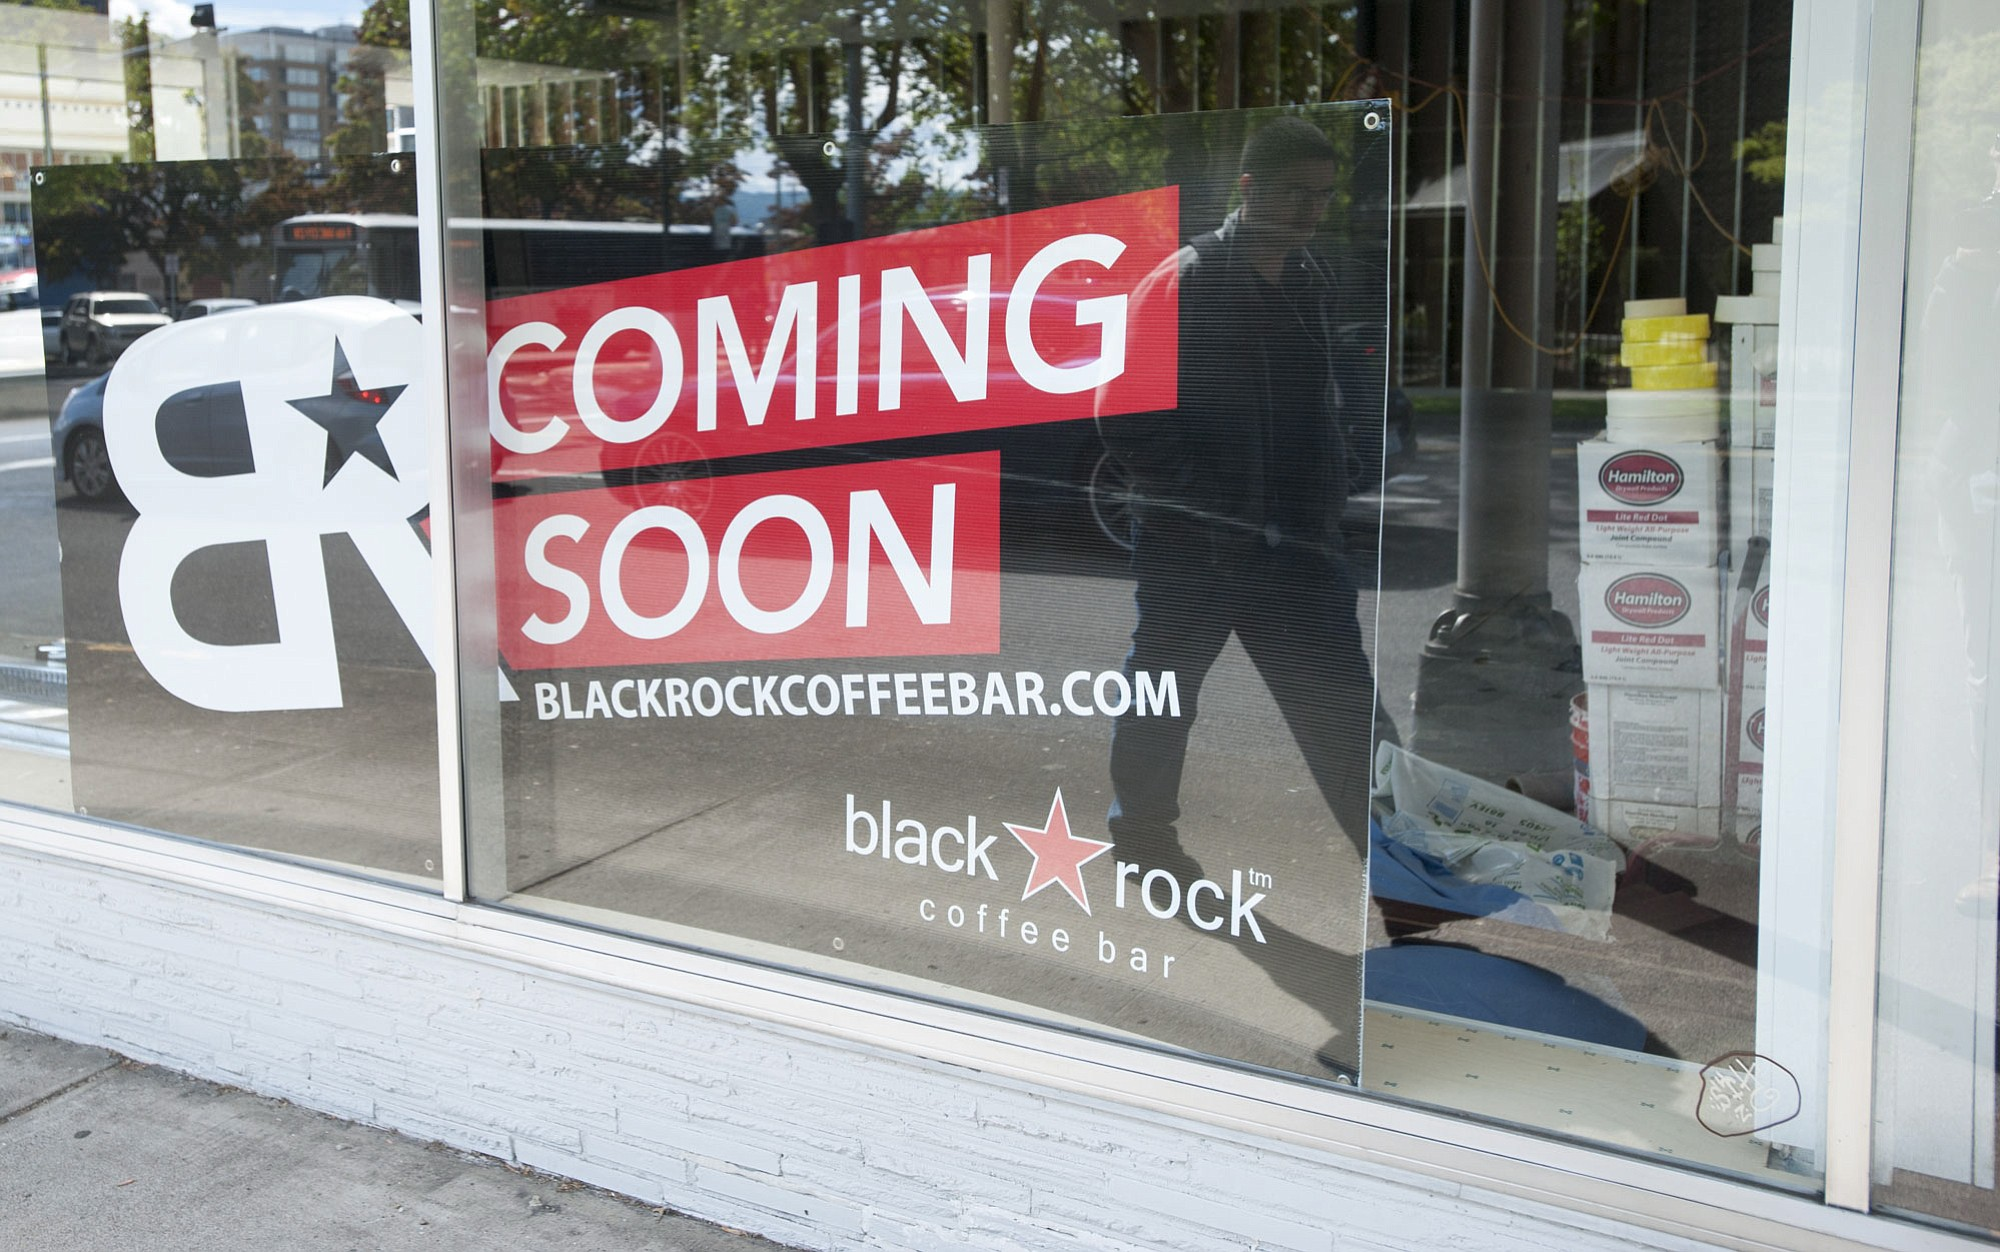 A Black Rock Coffee Bar will open in July in the former Sparks building. The Oregon-based coffee retailer has three Vancouver locations and is adding three more, including the Sparks site.